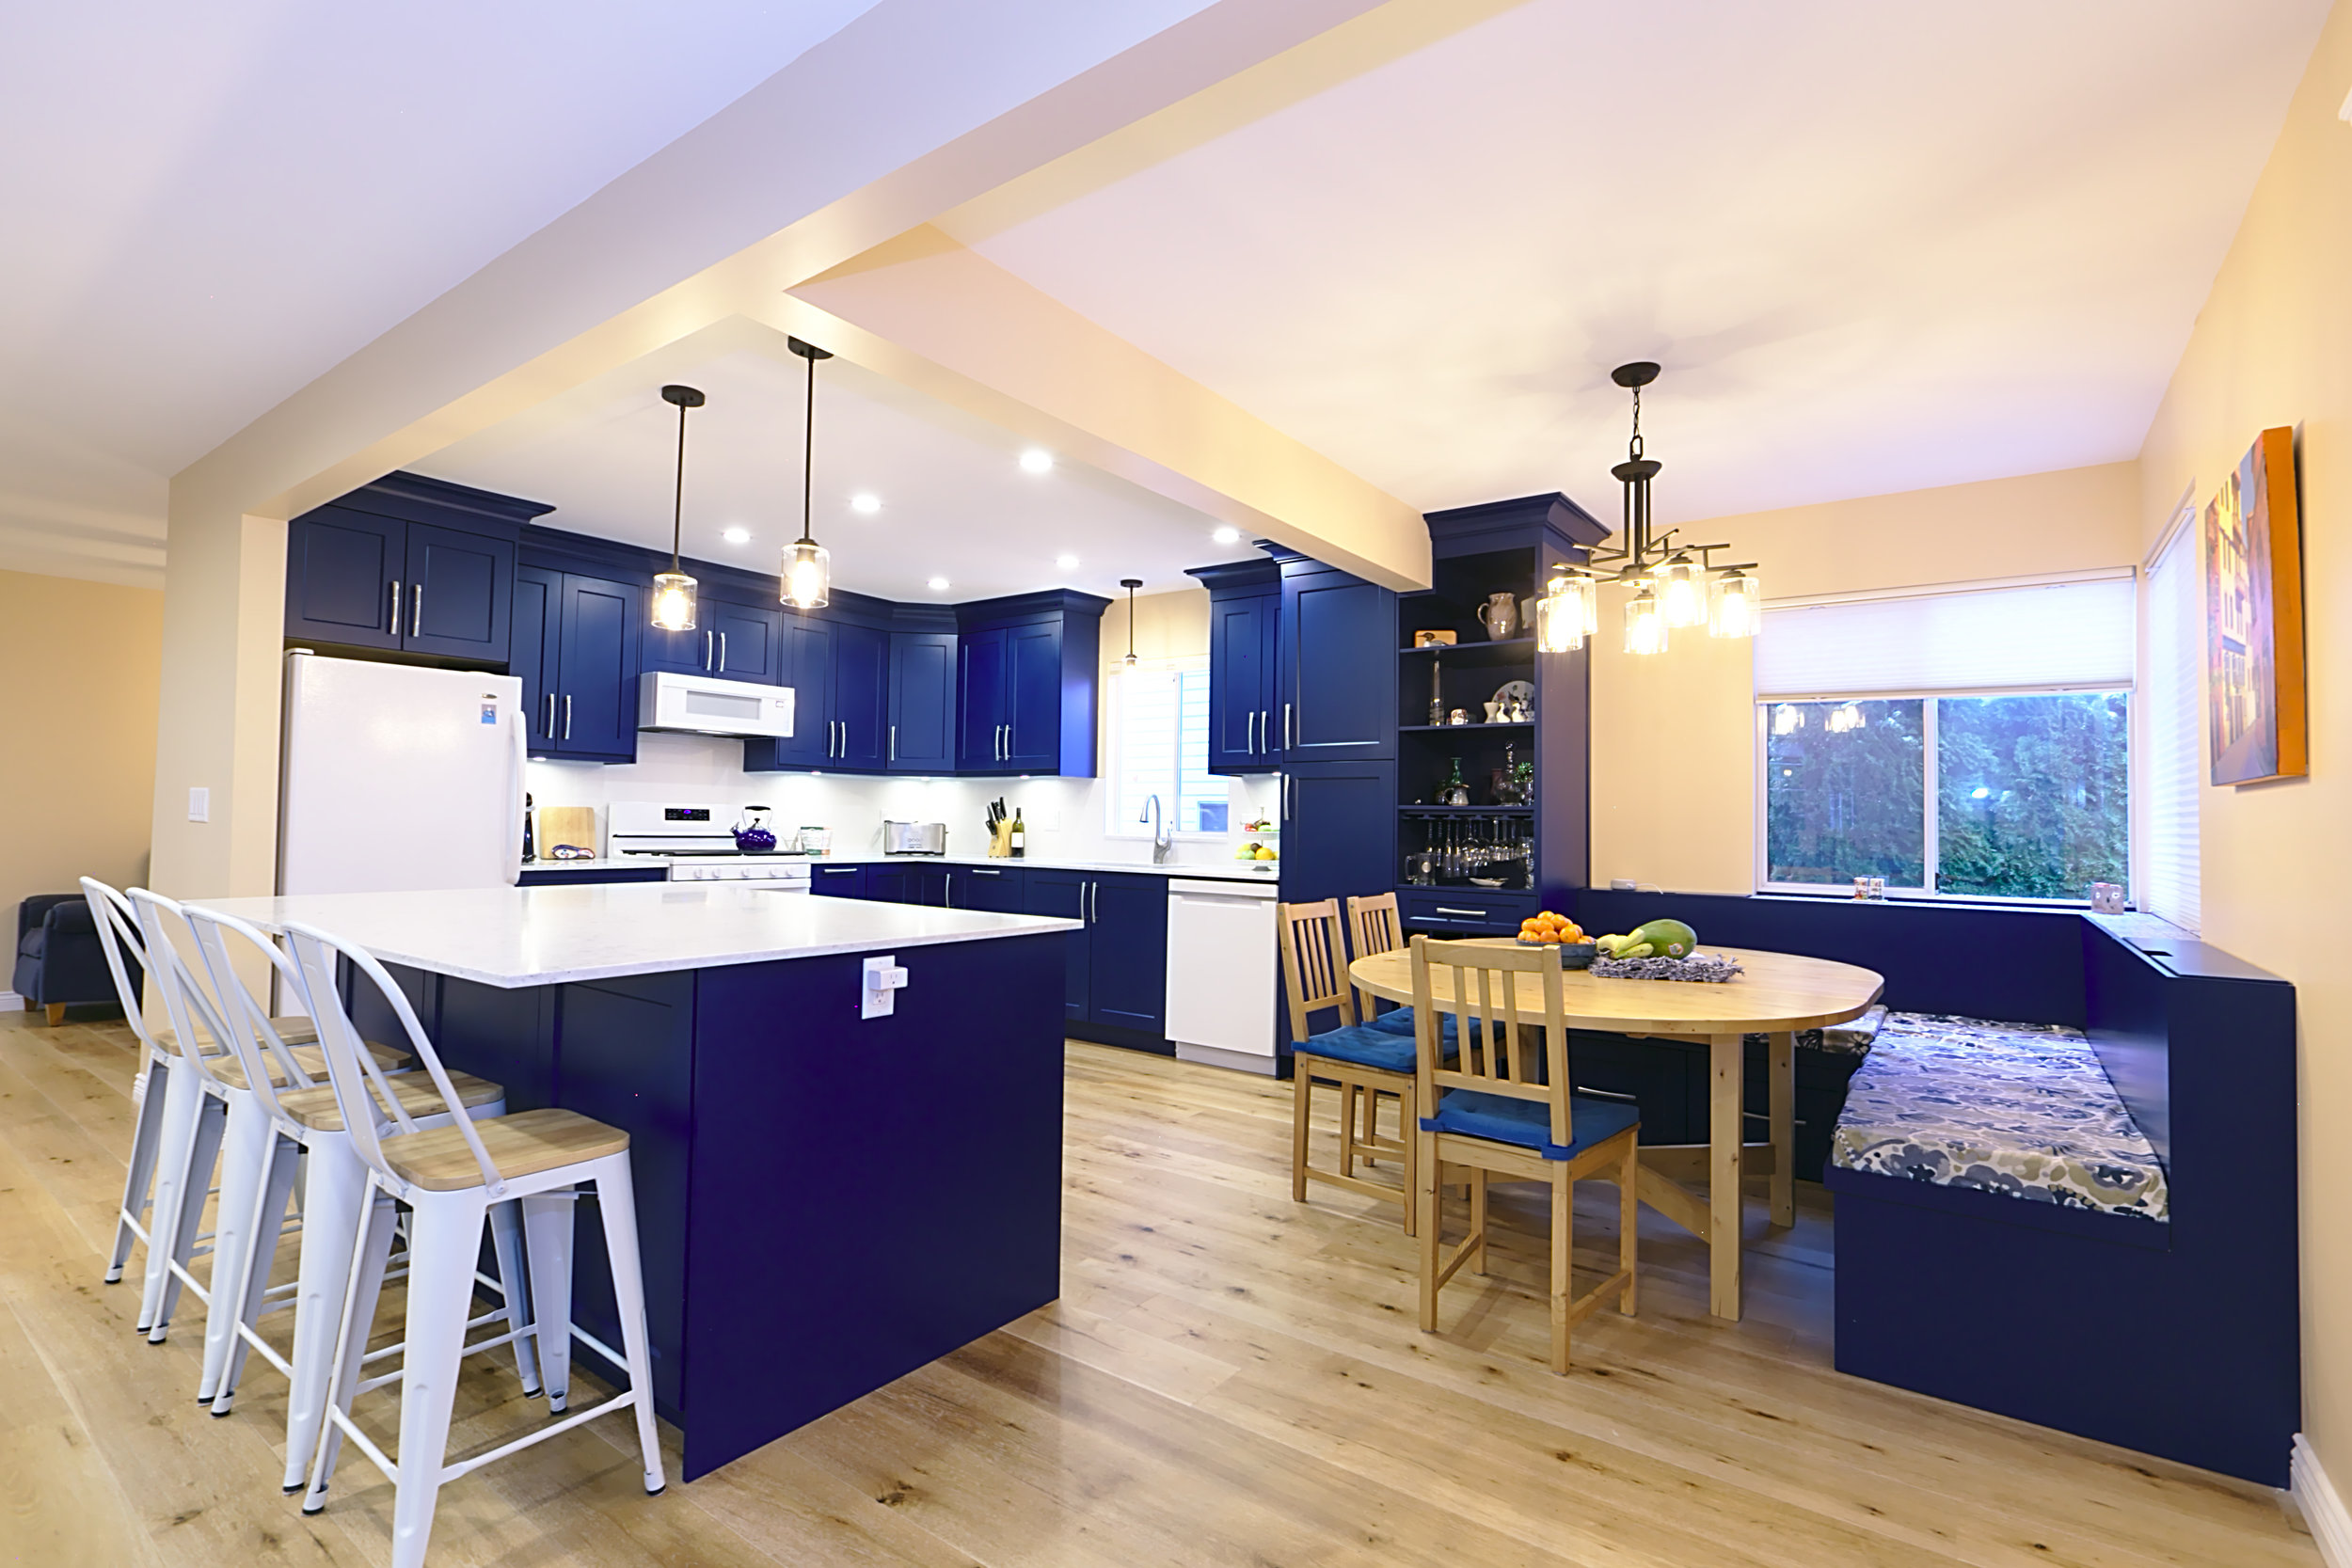 THE JORDAN KITCHEN - FEAUTURE IN BLUE